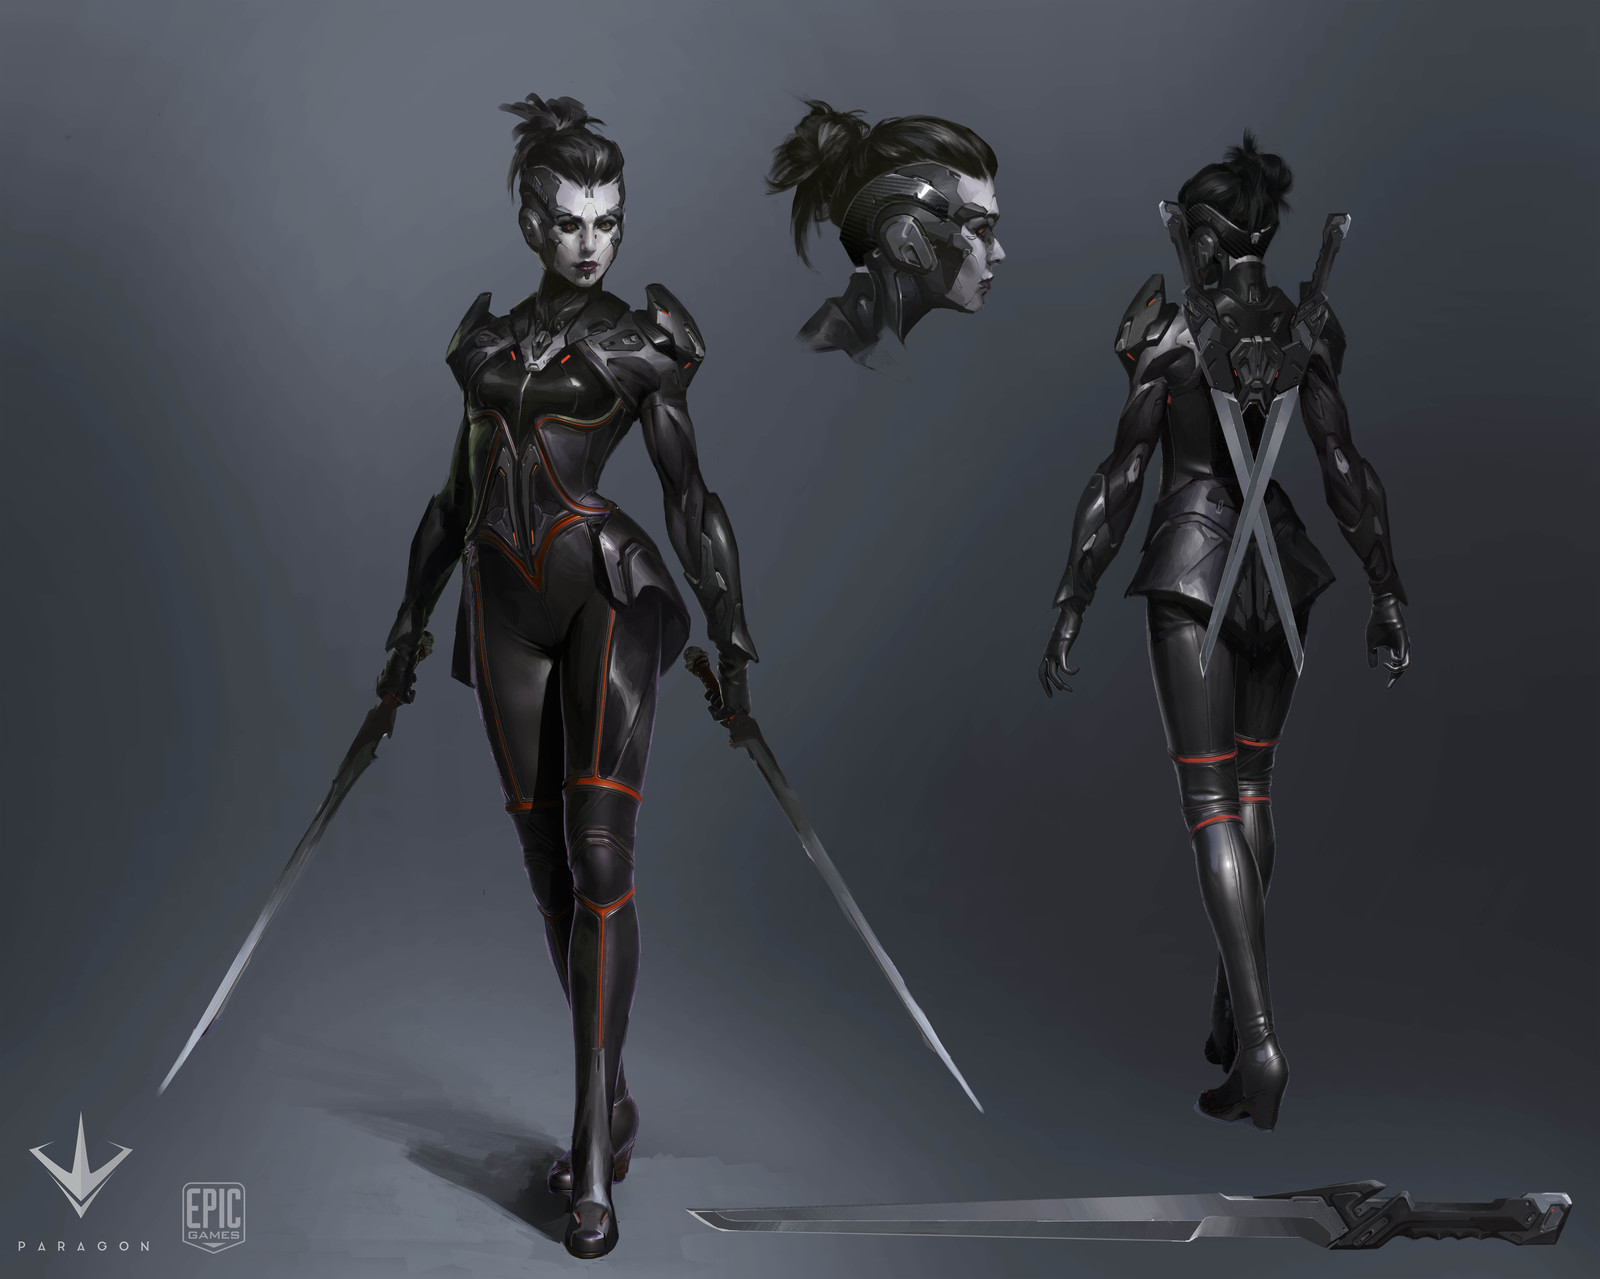 16.Countess shadow ops